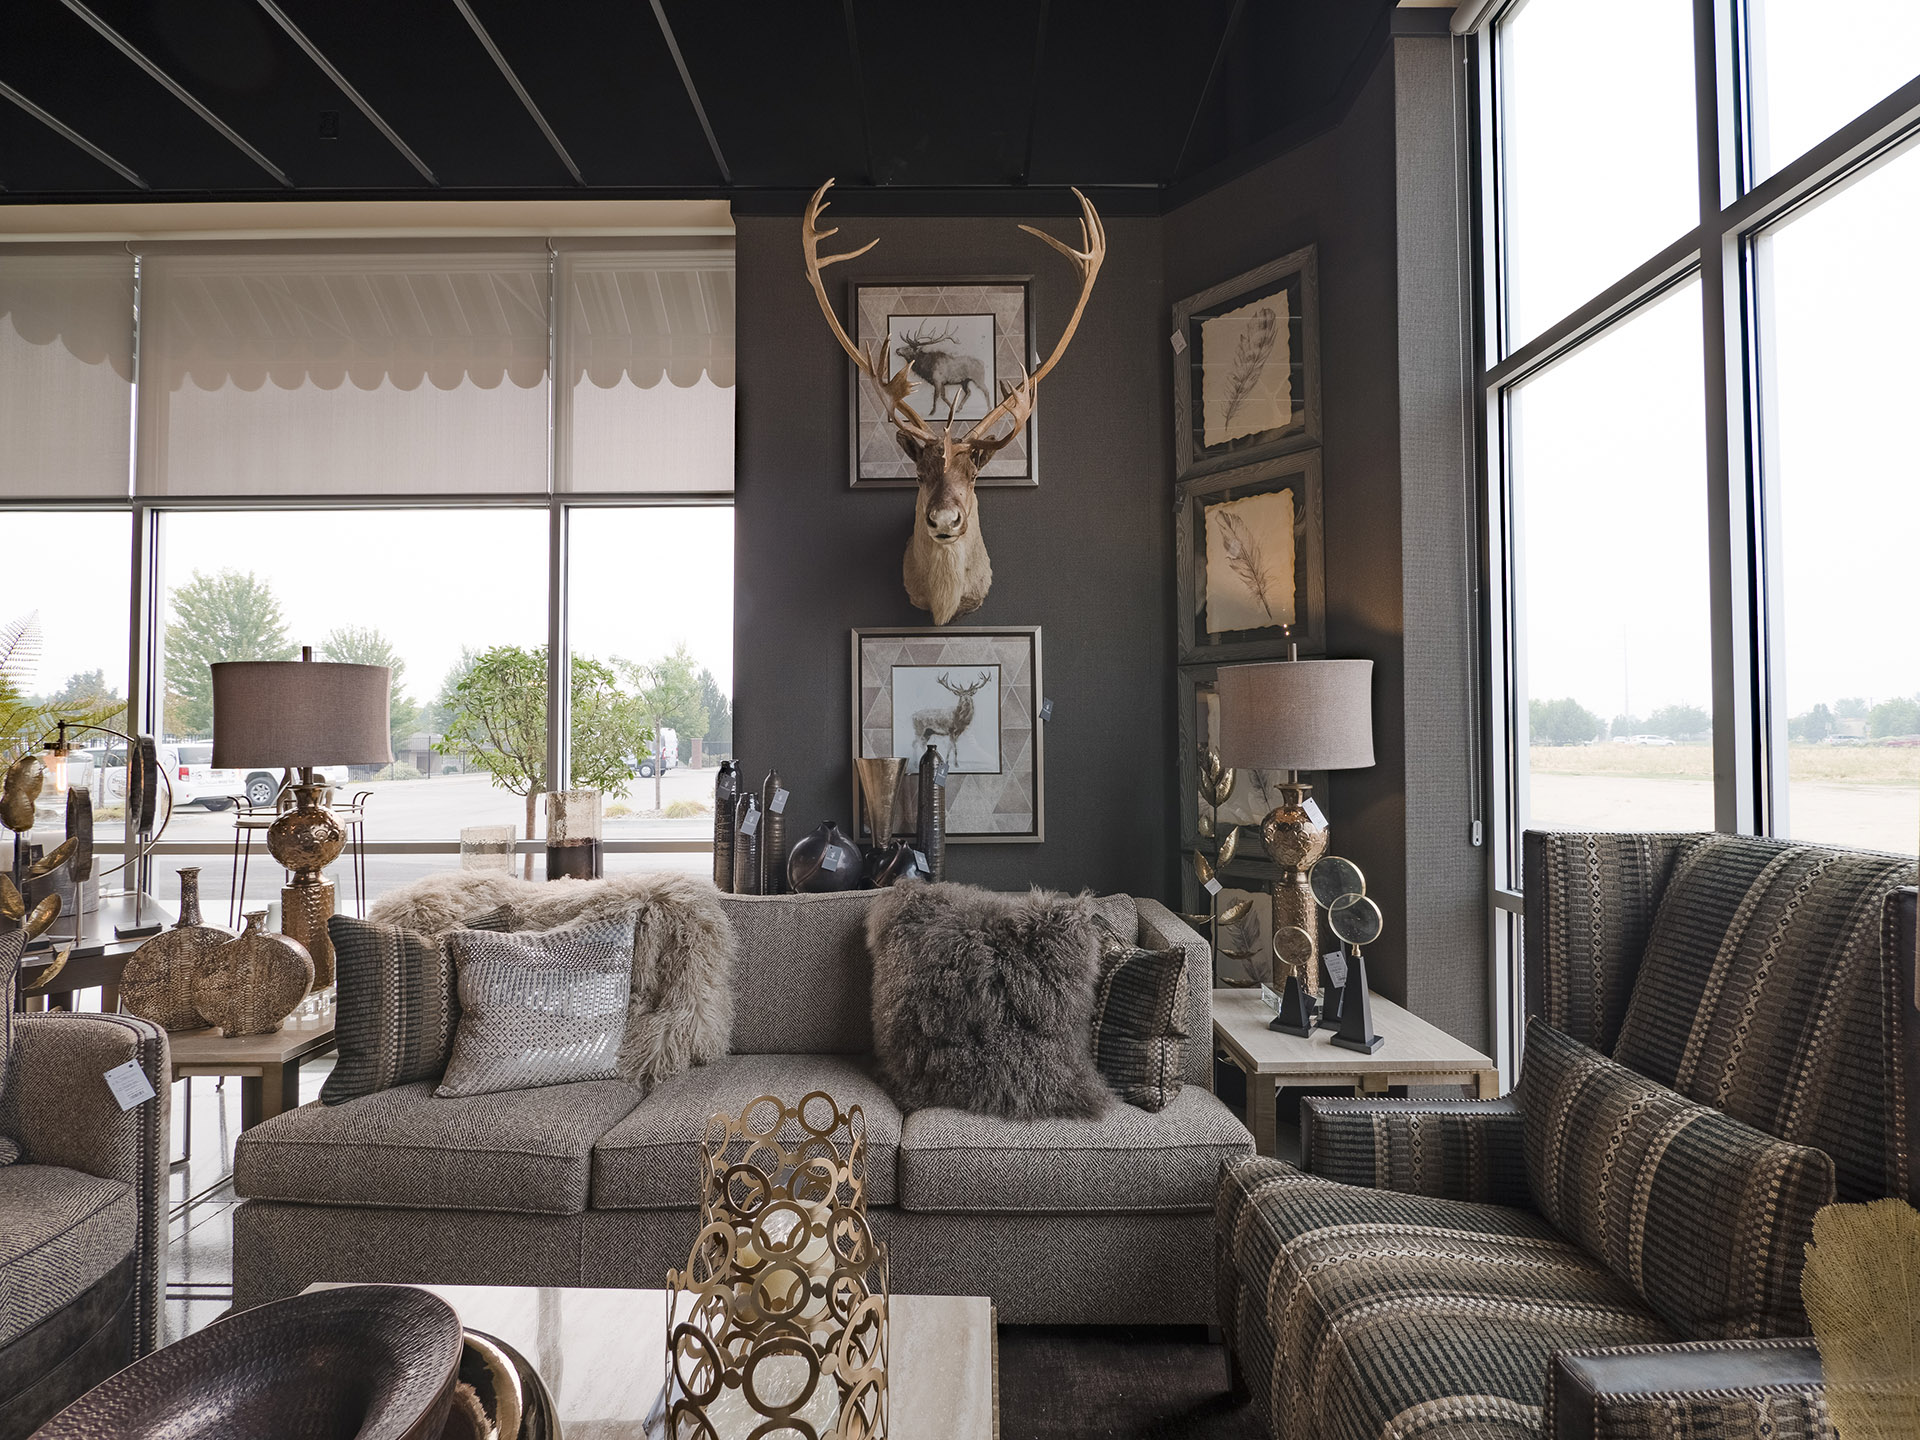 Captivating Inspired Living Collection Is The Premiere Boise Furniture Store. When You  Enter Your Beautifully Designed Home It Will Welcome You With Open Arms.